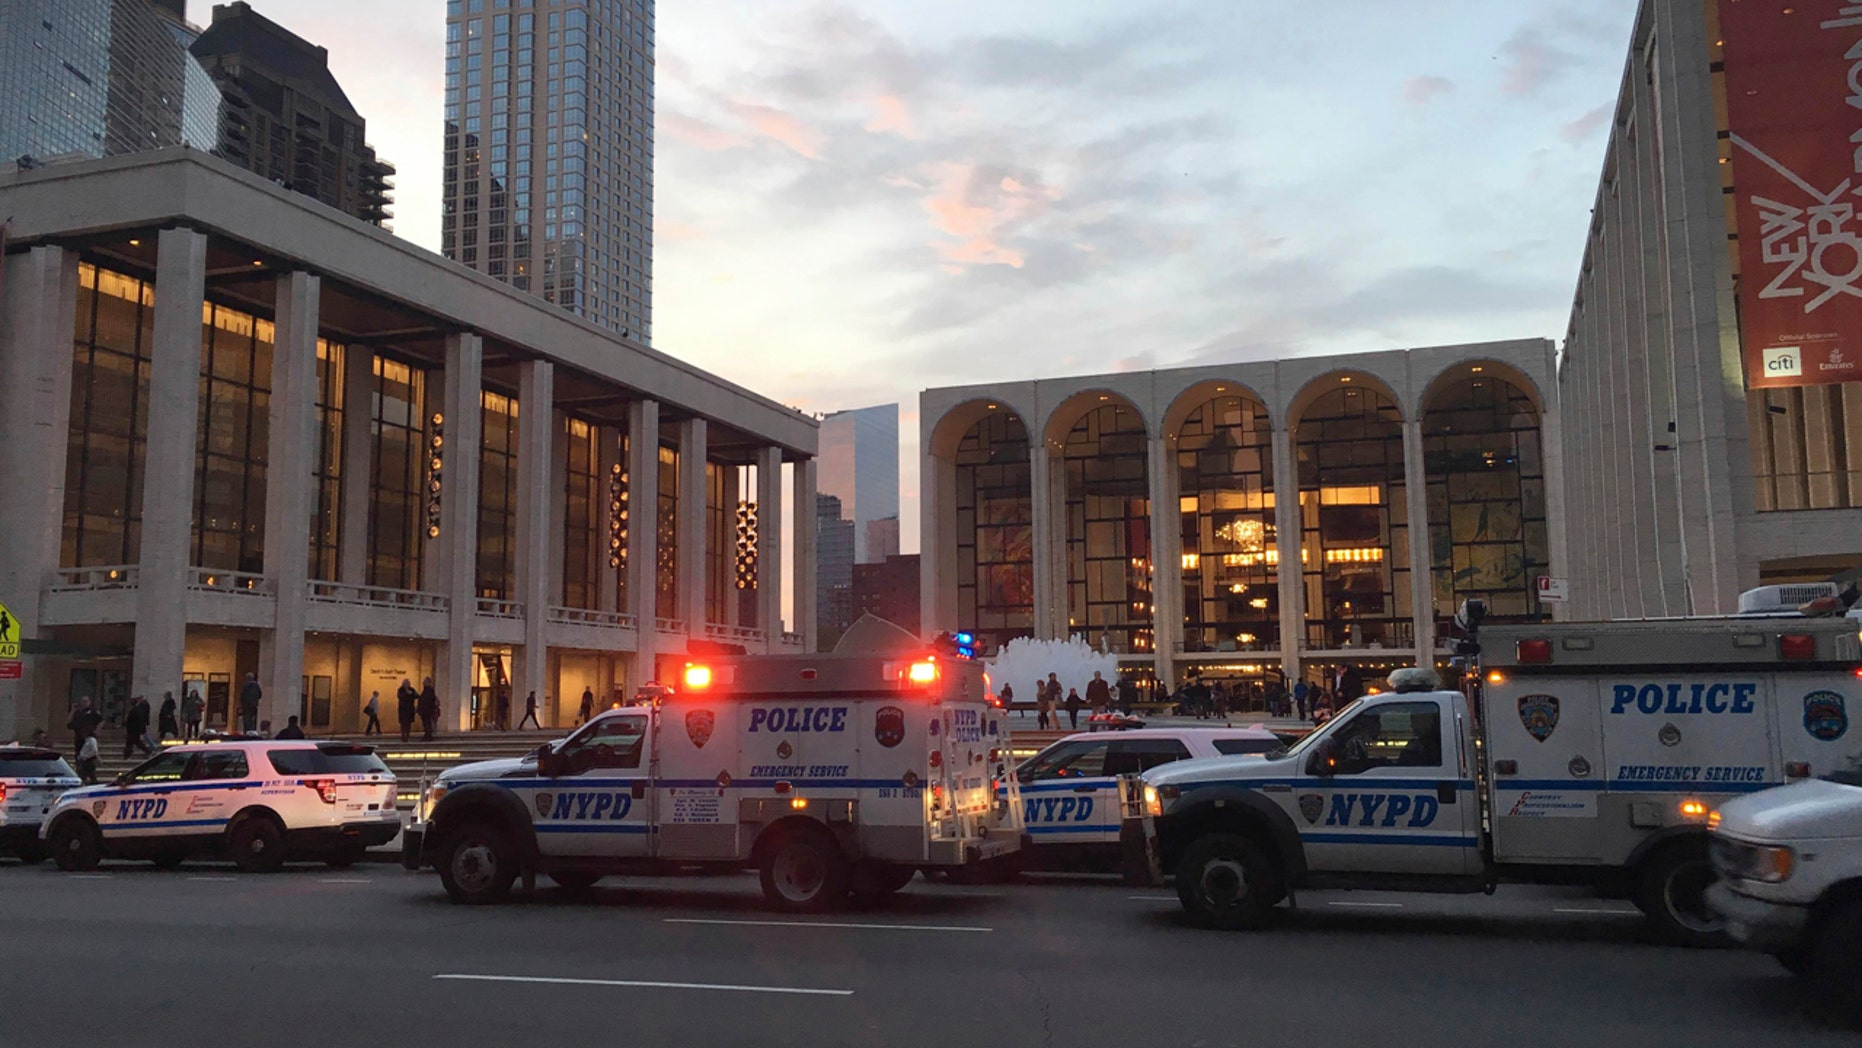 Oct. 29, 2016: Police respond to New York's Metropolitan Opera which halted a performance after someone sprinkled an unknown powder into the orchestra pit.